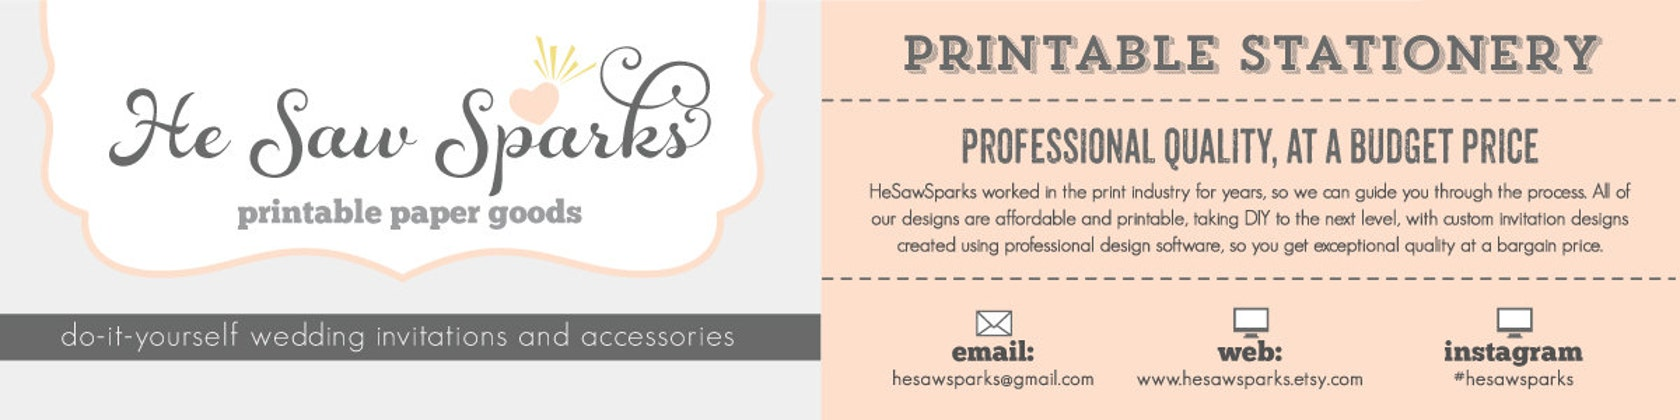 Printable wedding invitations by hesawsparks on etsy hesawsparks printable wedding invitations stopboris Images